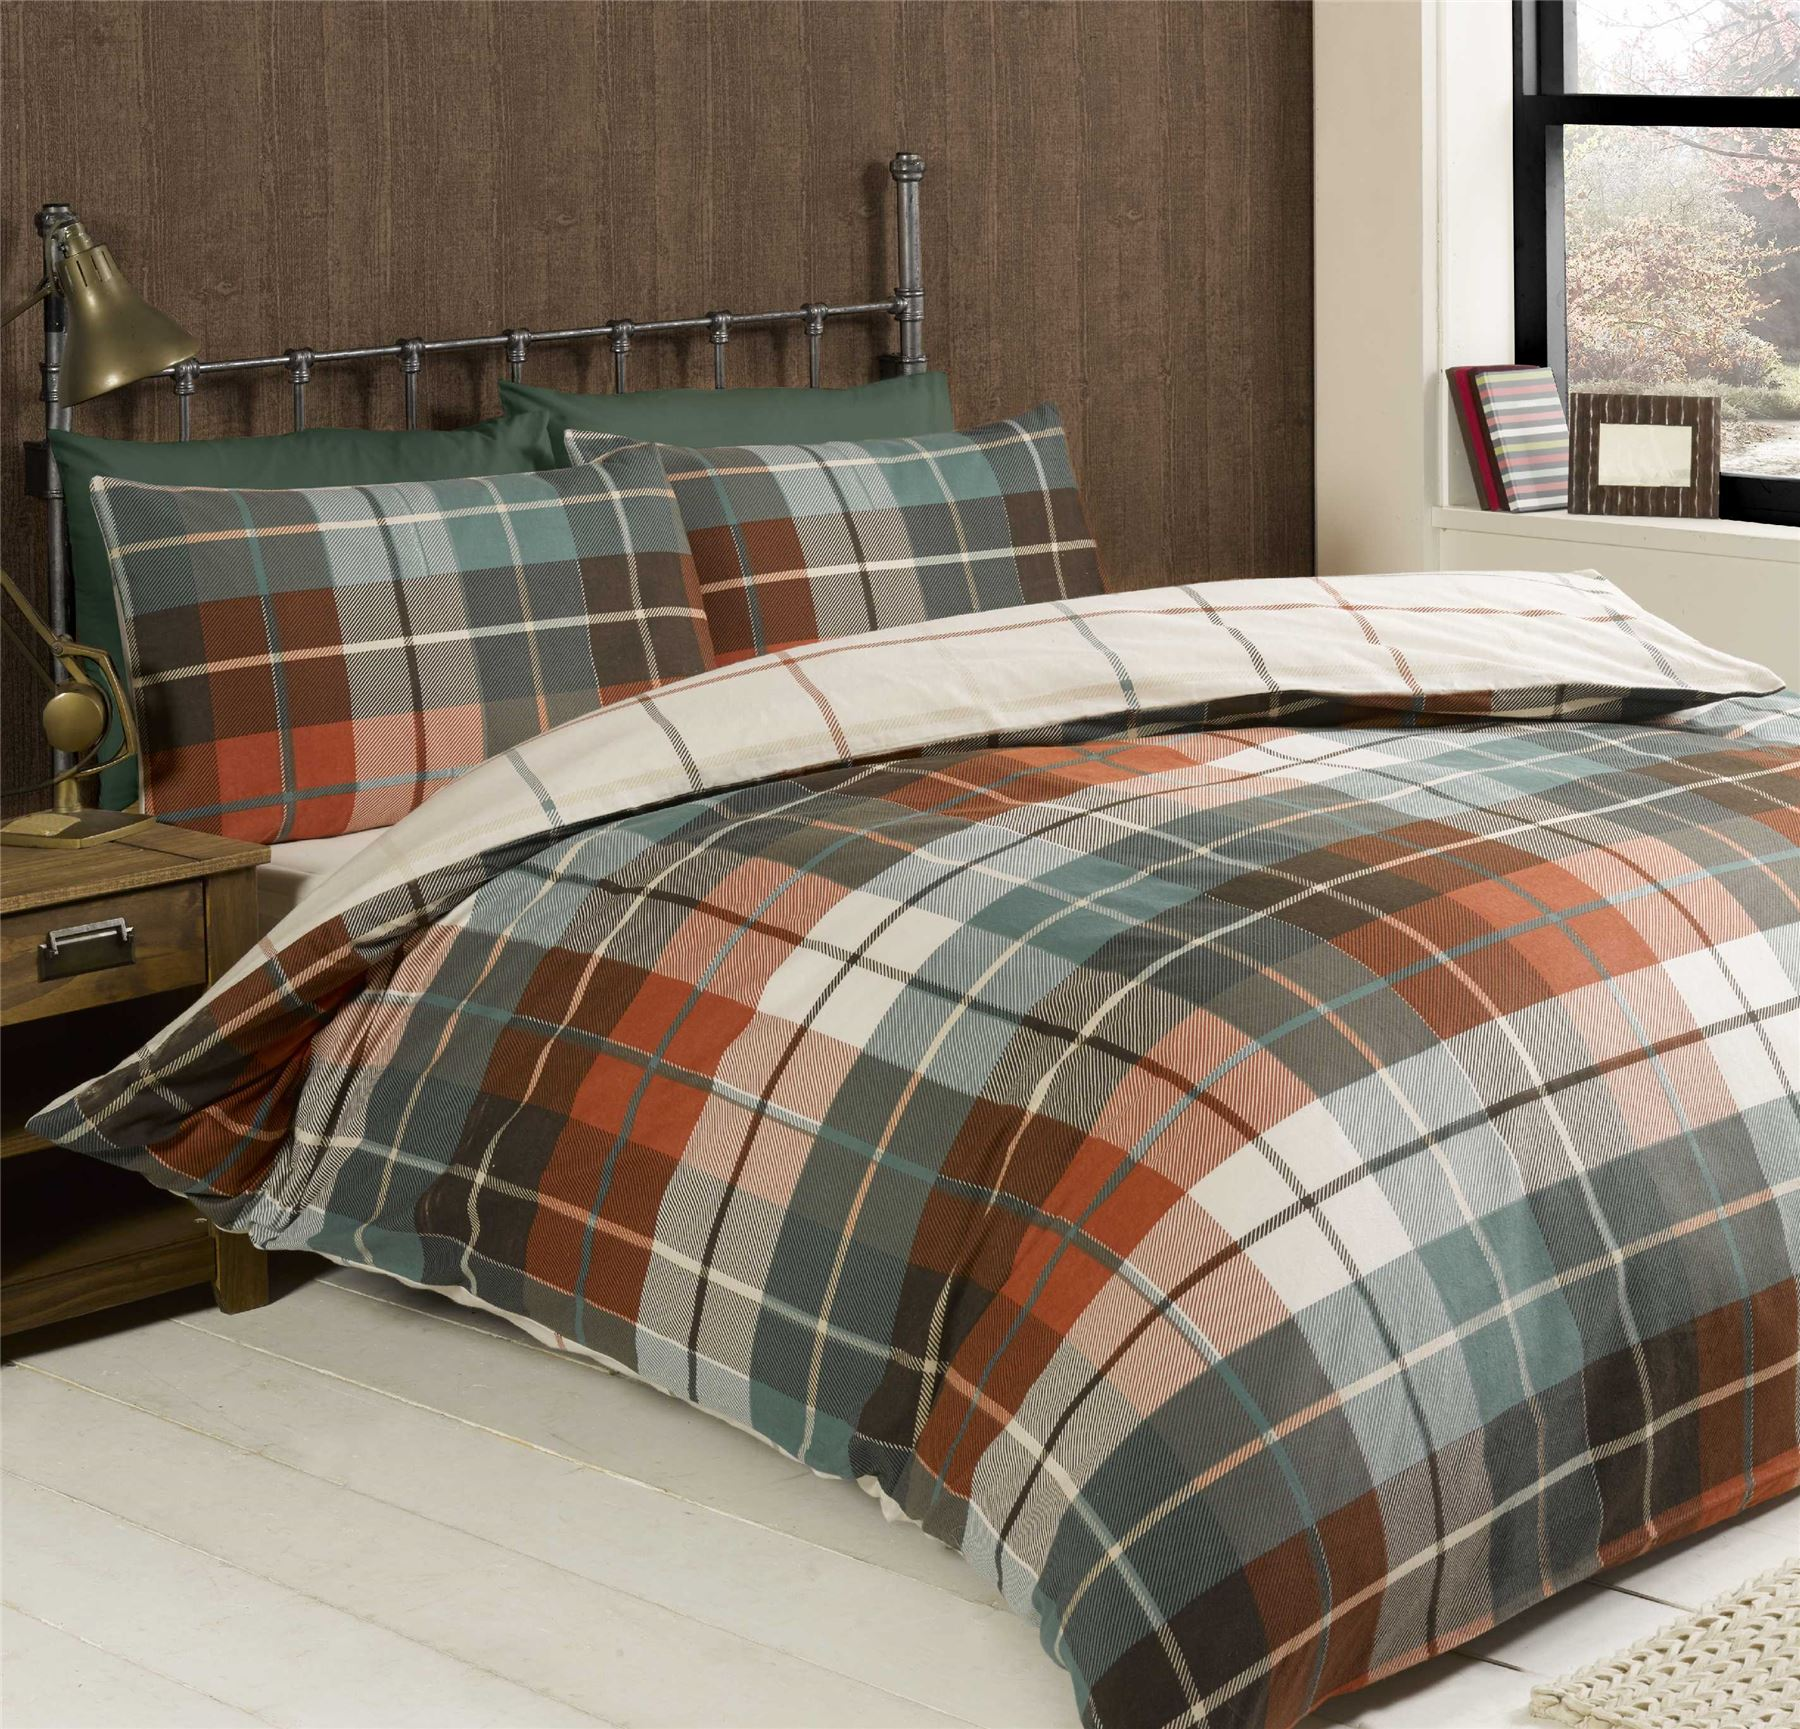 Checked & Striped Quilt Duvet Cover & Pillowcase Bedding ...